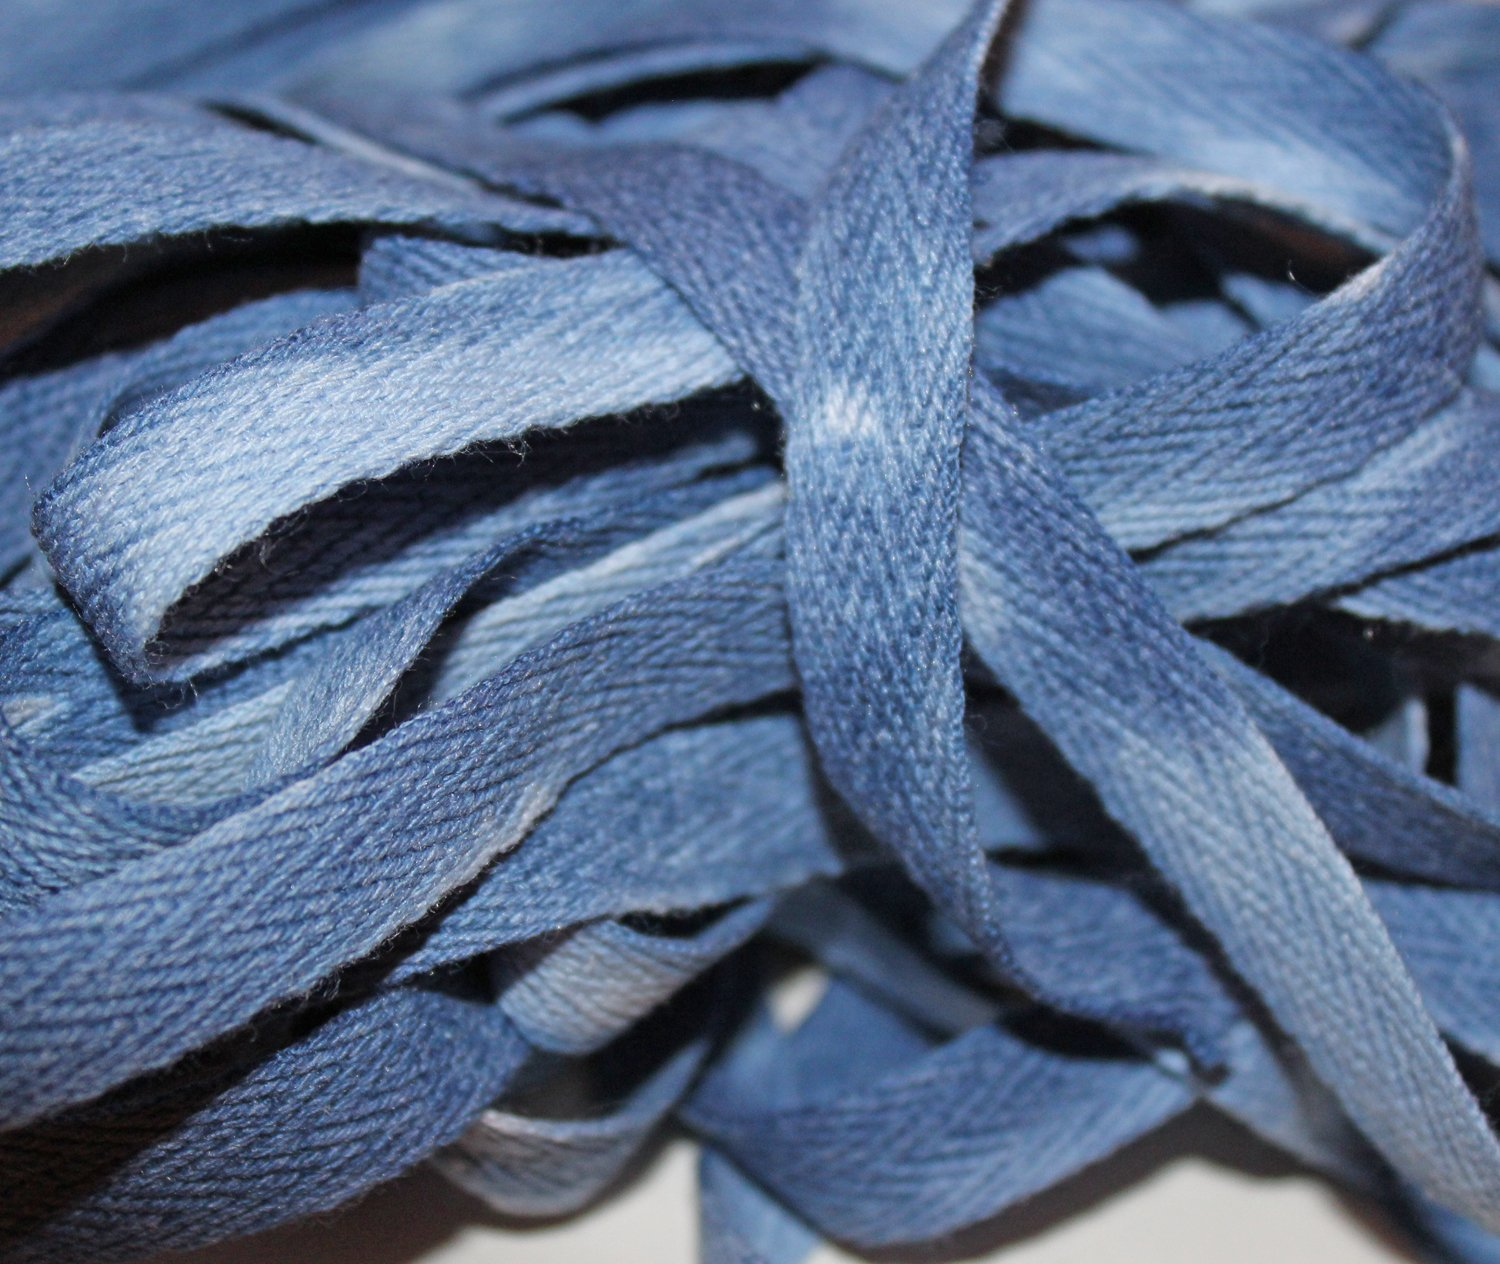 Denim - Hand-dyed Cotton Twill Tape 3/8 wide